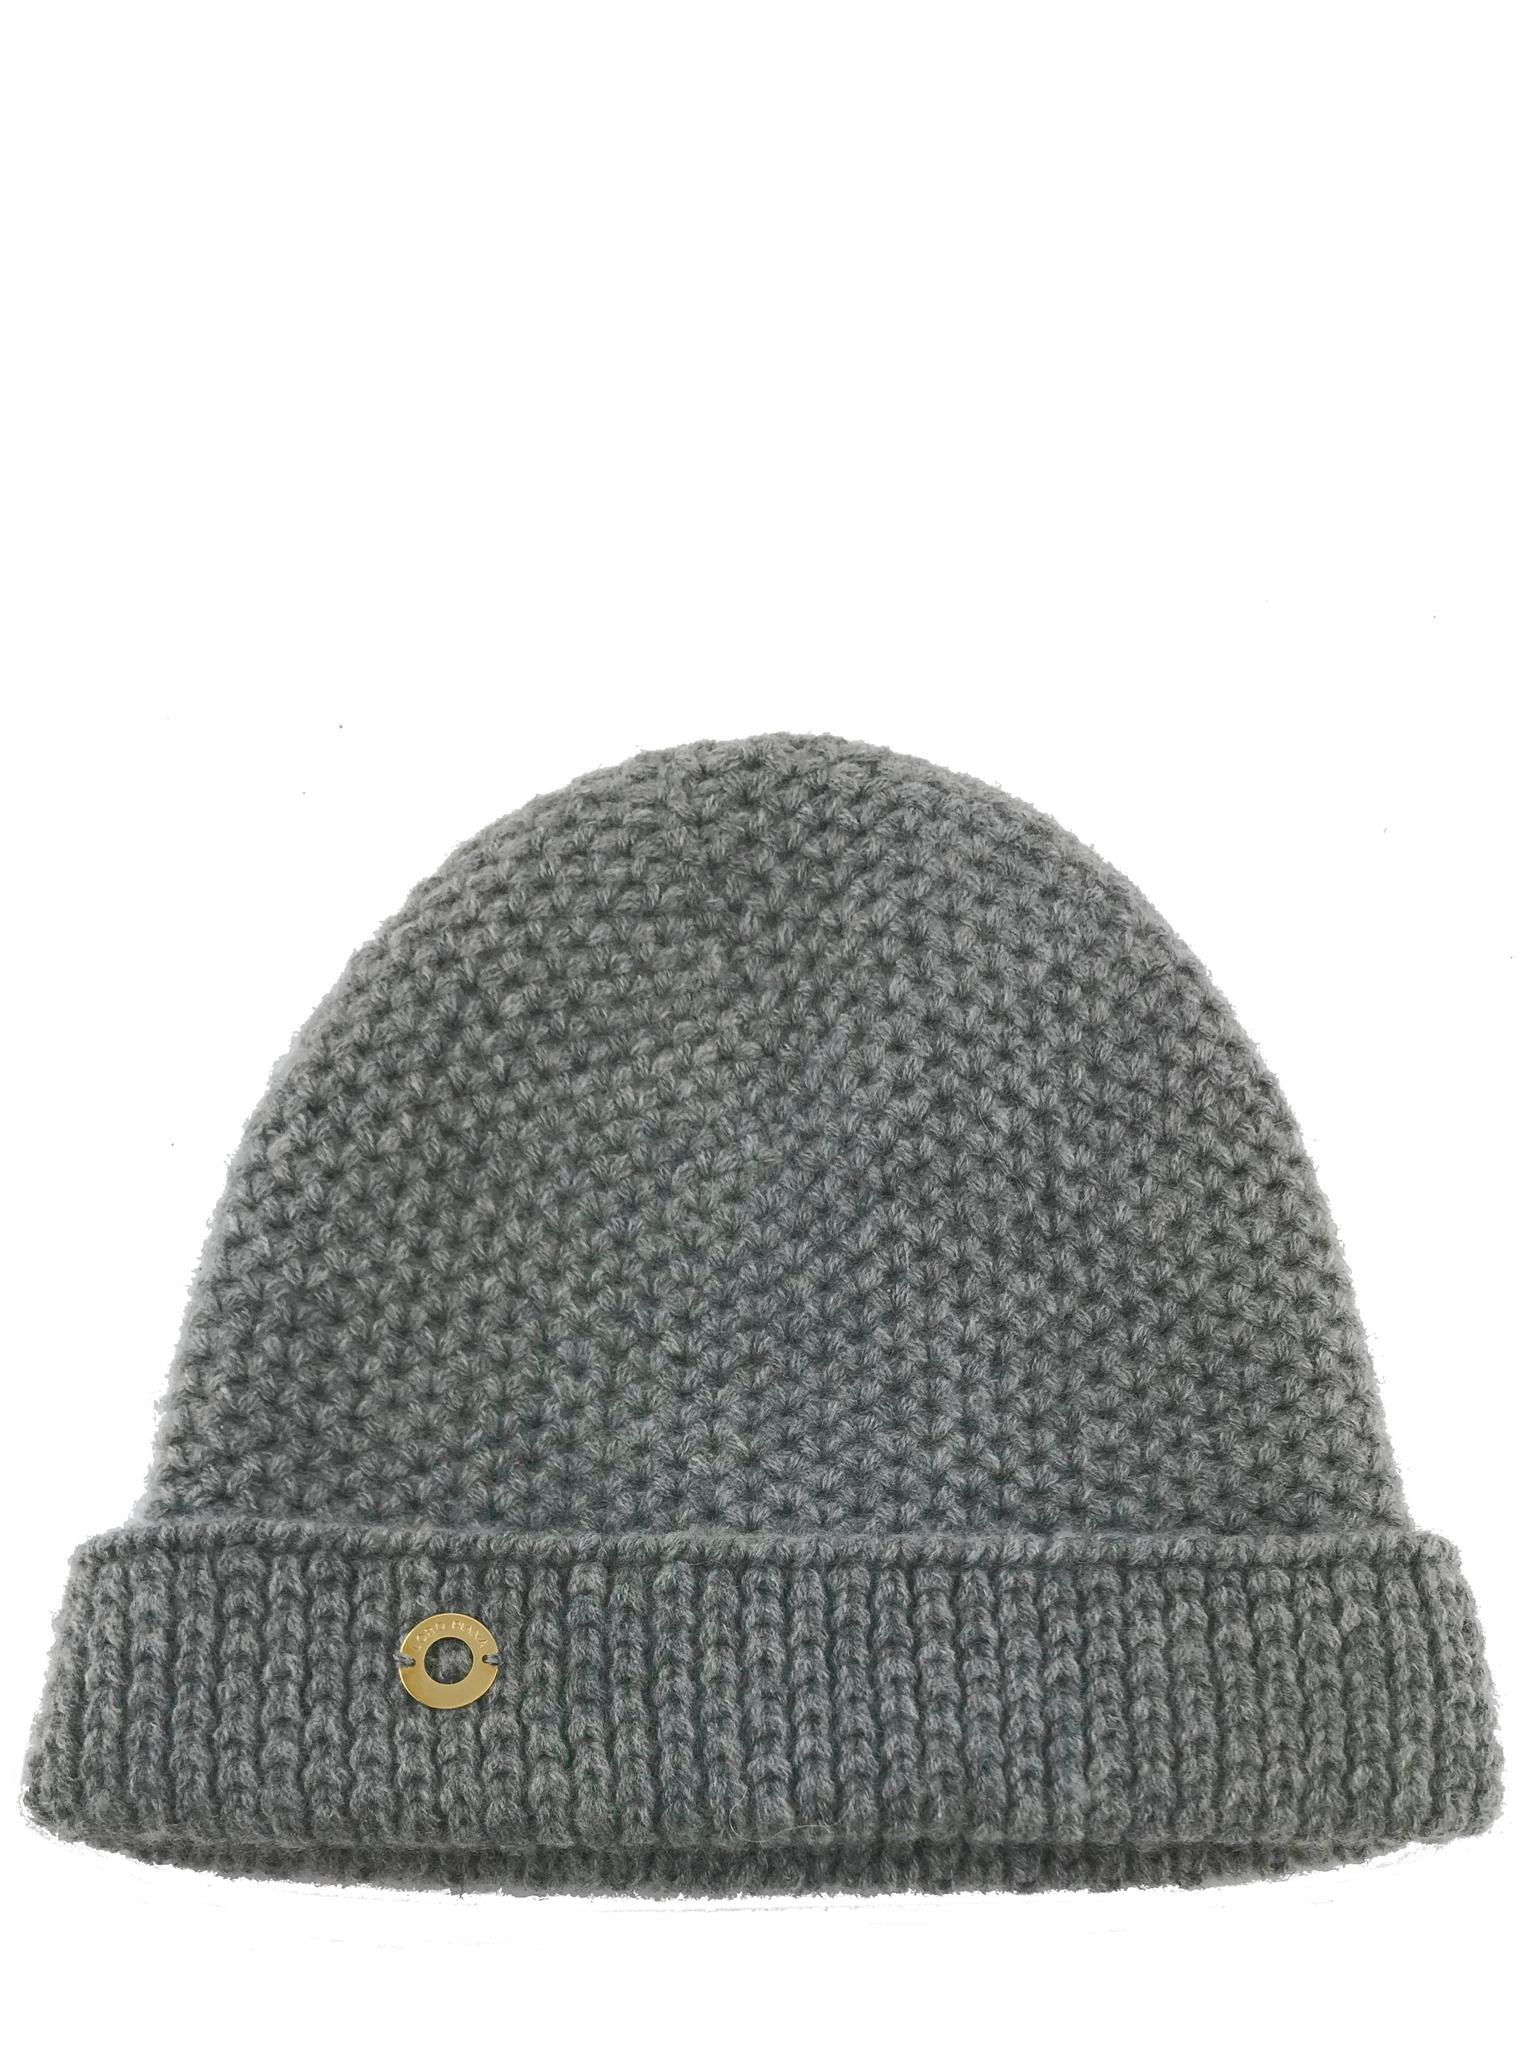 ec807731351 Loro Piana Rougement Chain-Knit Cashmere Beanie Hat. Liquid error  Index  was out of range. Must be non-negative and less than the size of the  collection.